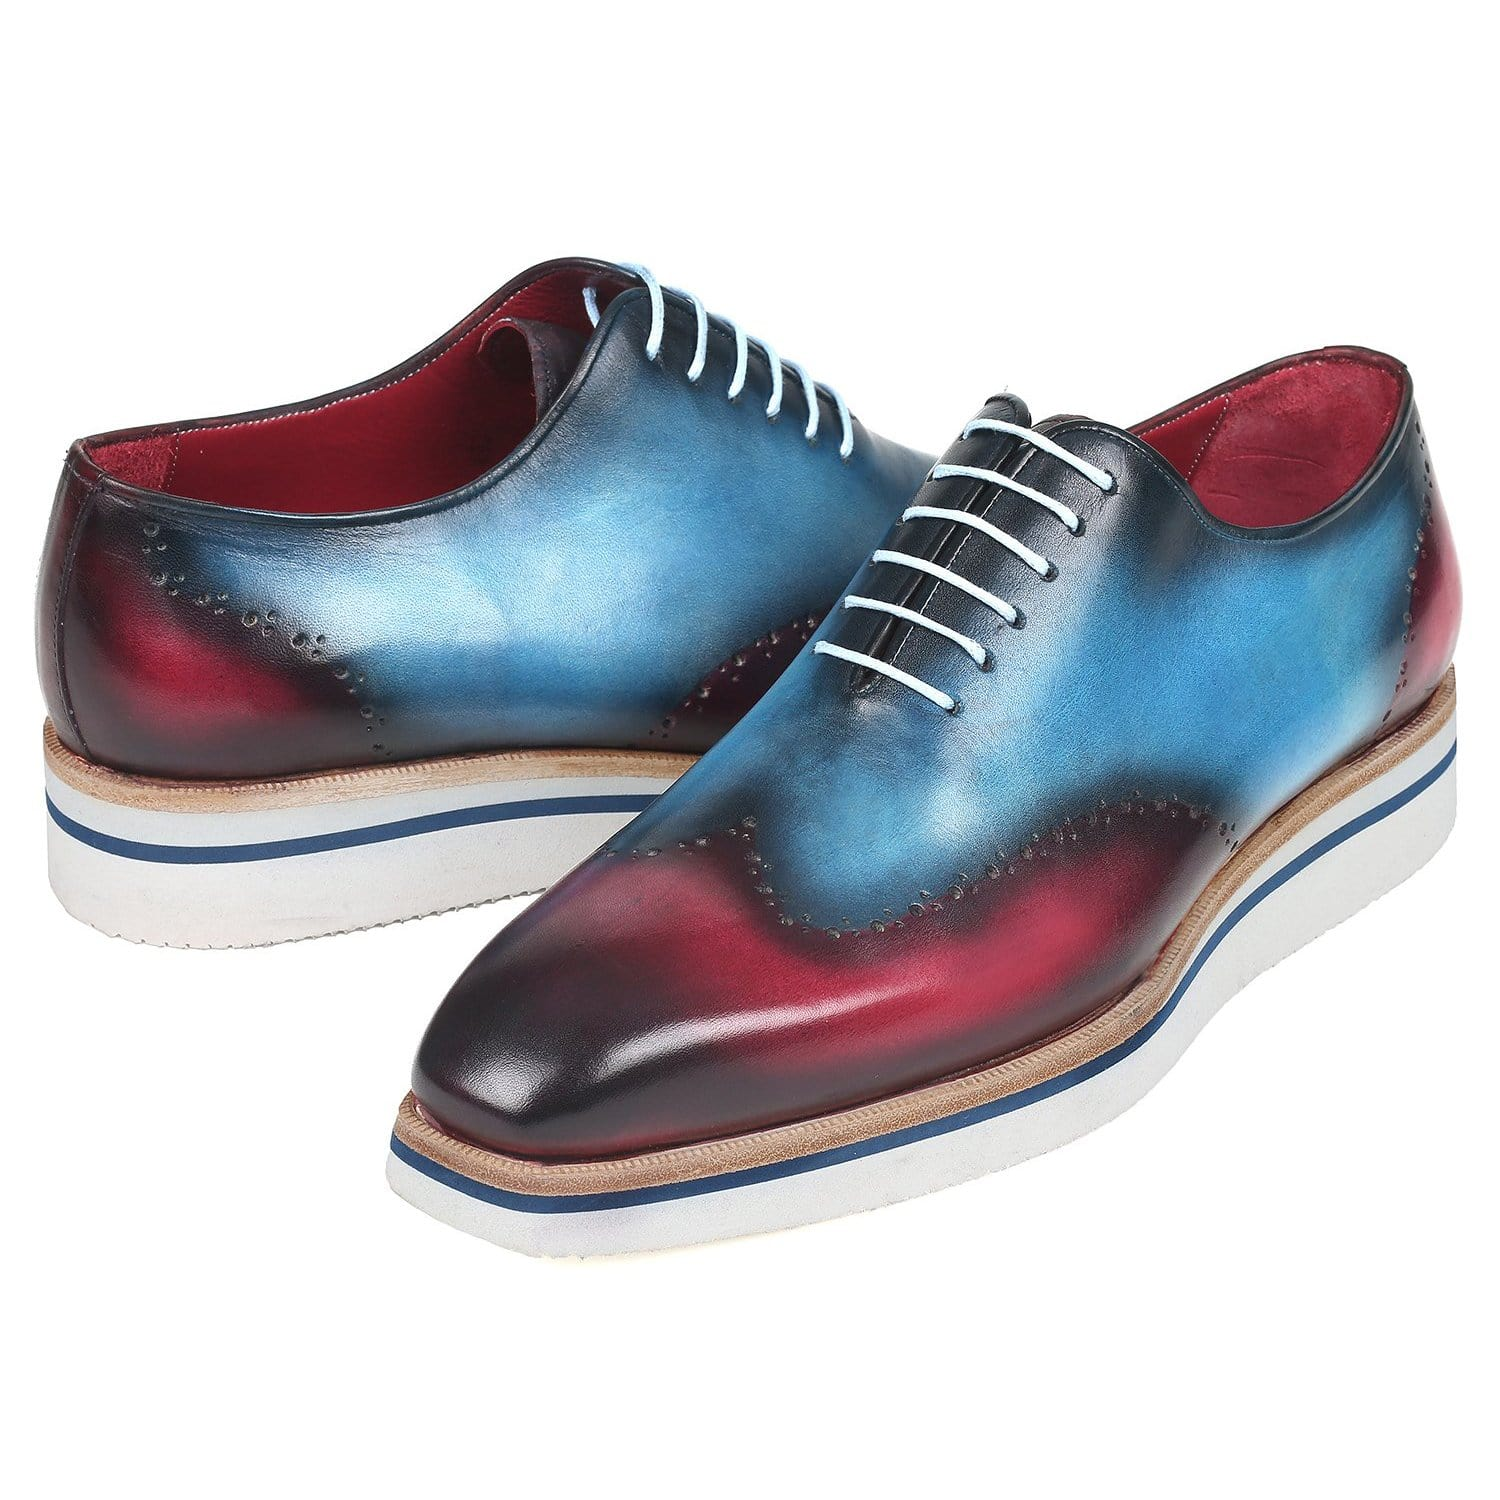 Gradient Color Leather Sneakers Hand Deying Shoes Soft Sole Comfy Leather